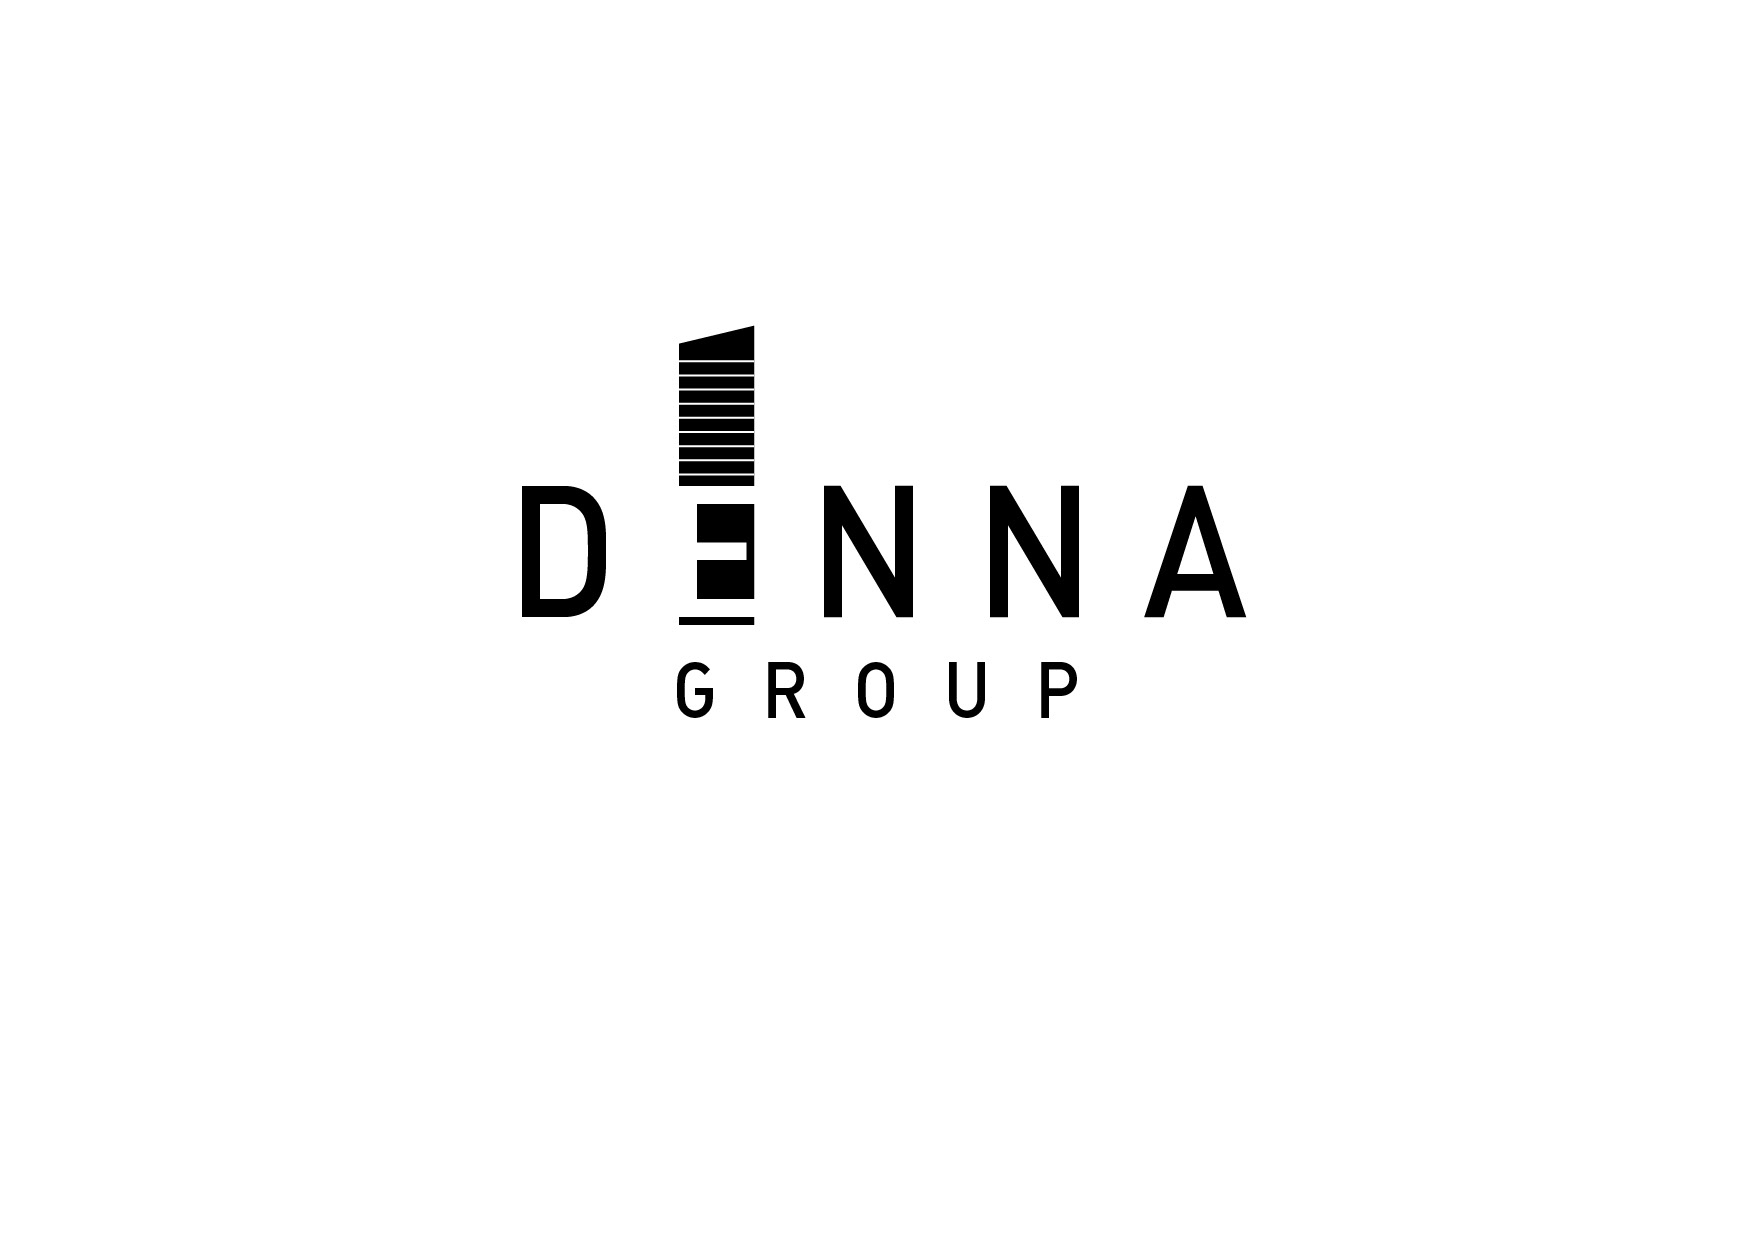 Logo Design by Sabrina Amalin - Entry No. 236 in the Logo Design Contest Denna Group Logo Design.